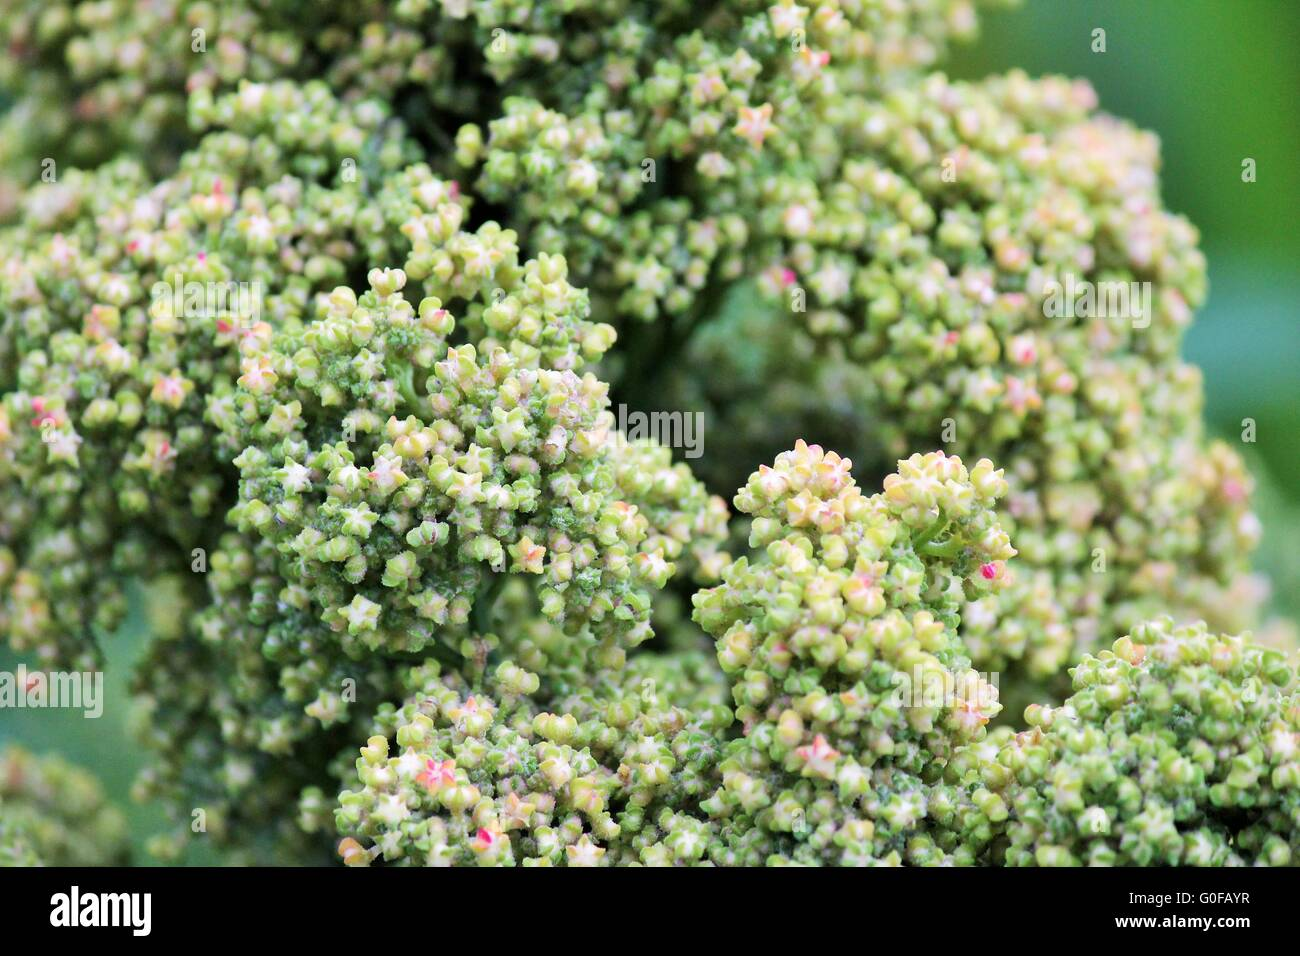 Quinoa crop grows at farm superfood - Stock Image